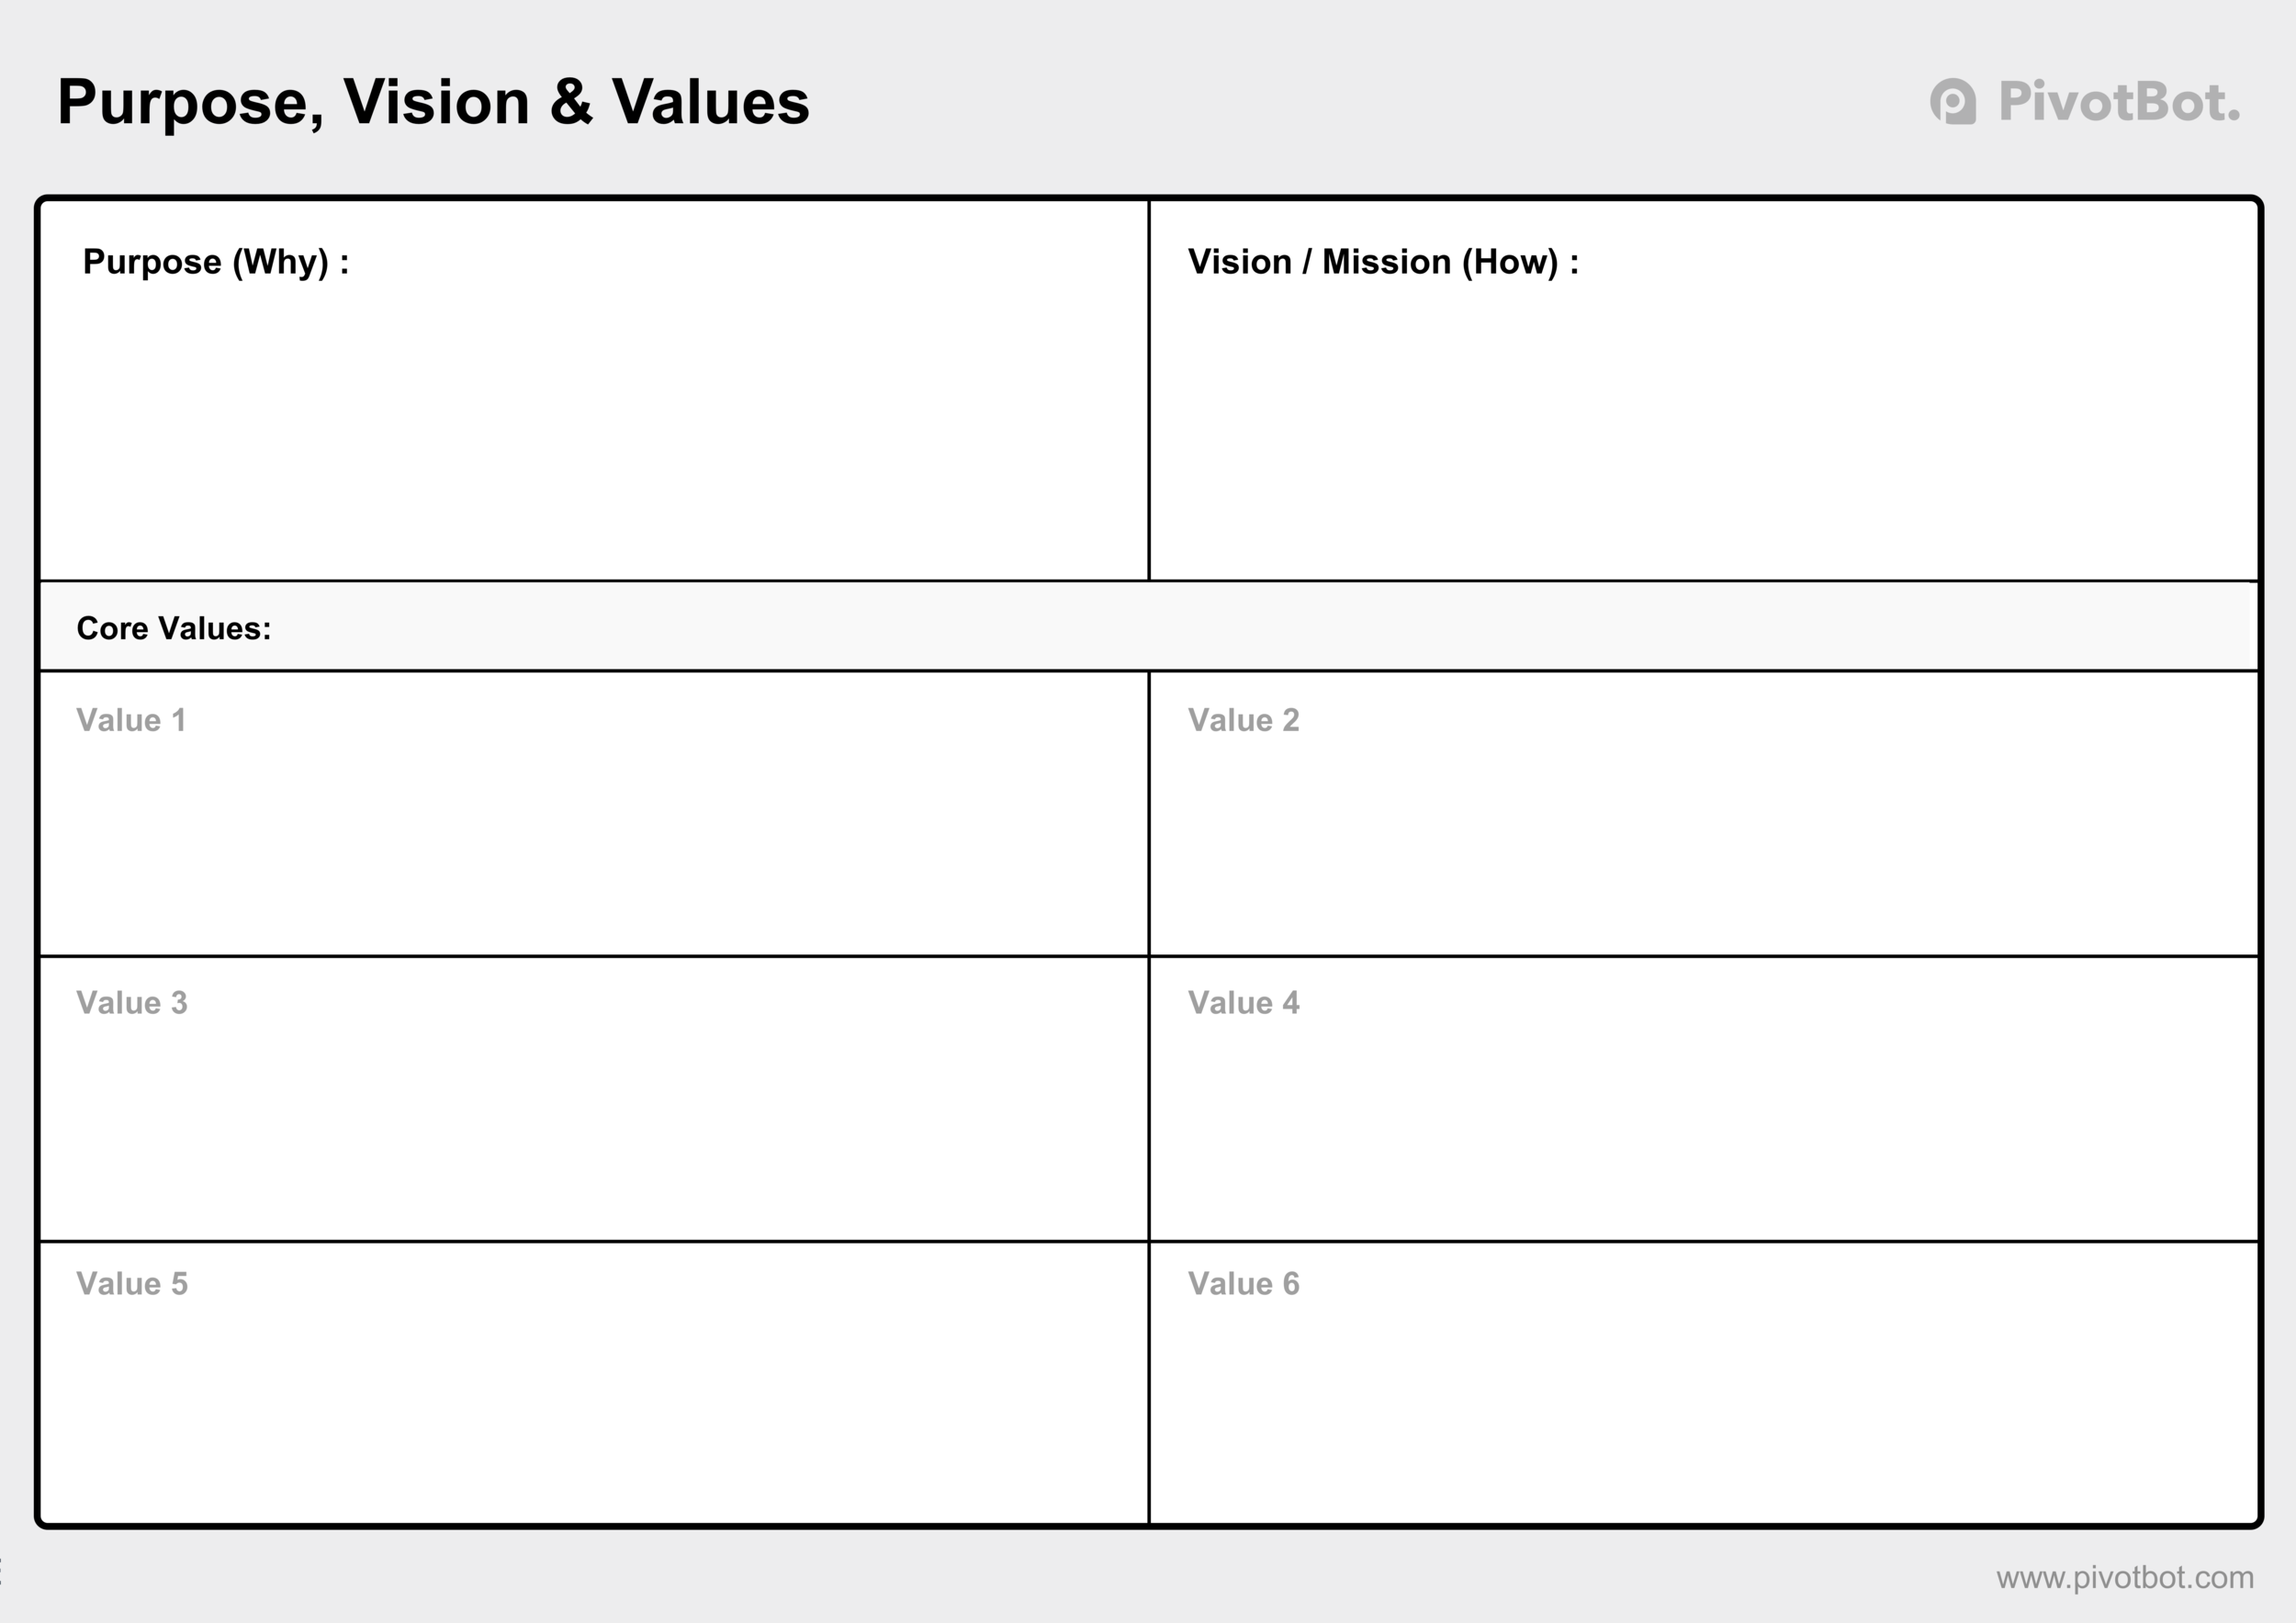 Purpose Vision & Values.png